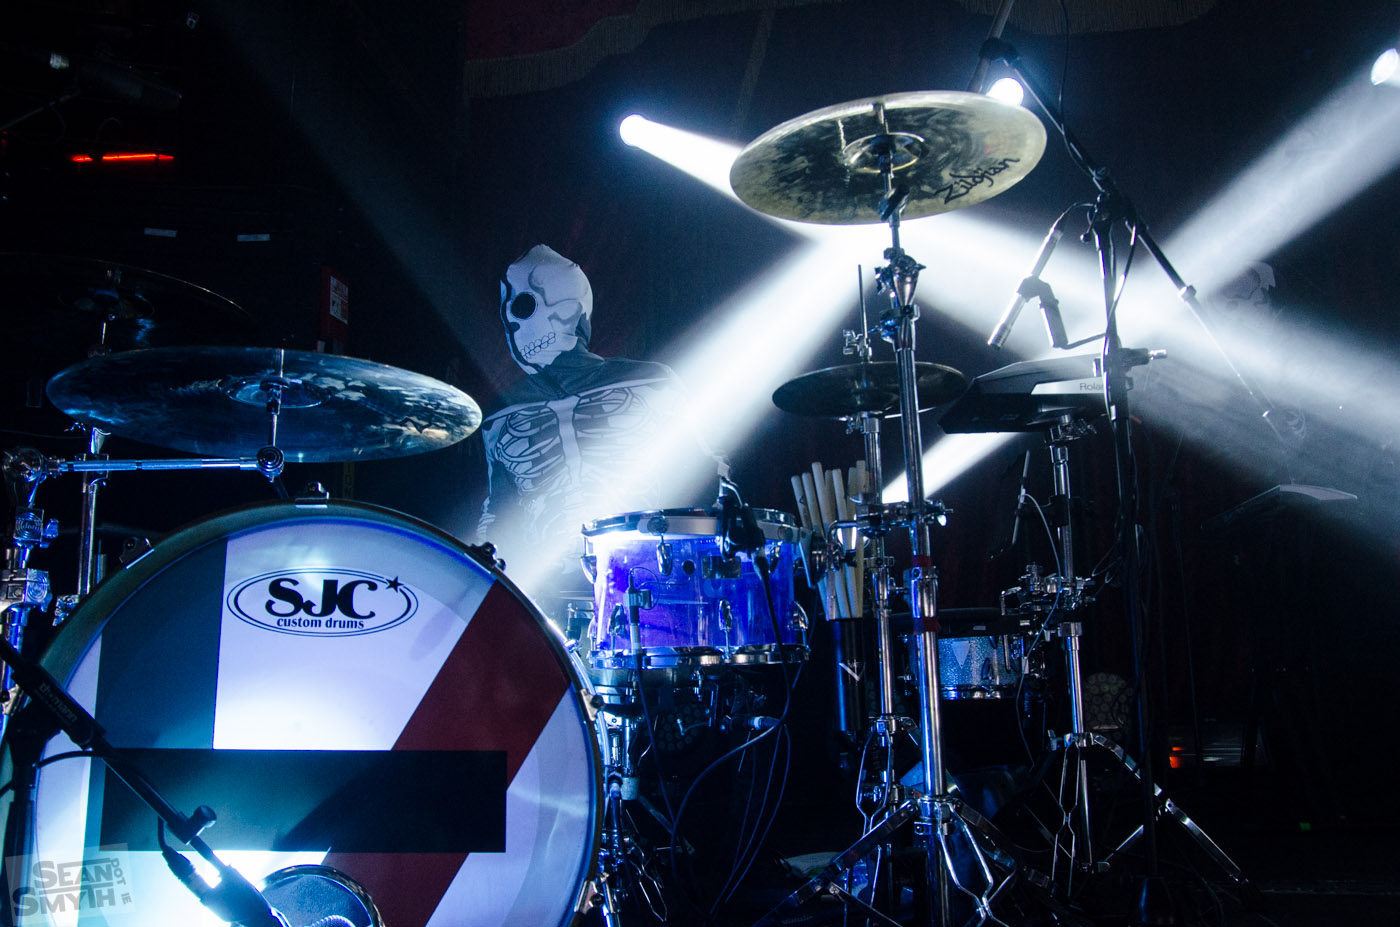 twenty-one-pilots-at-the-academy-by-sean-smyth-16-11-14-38-of-41_15783147826_o